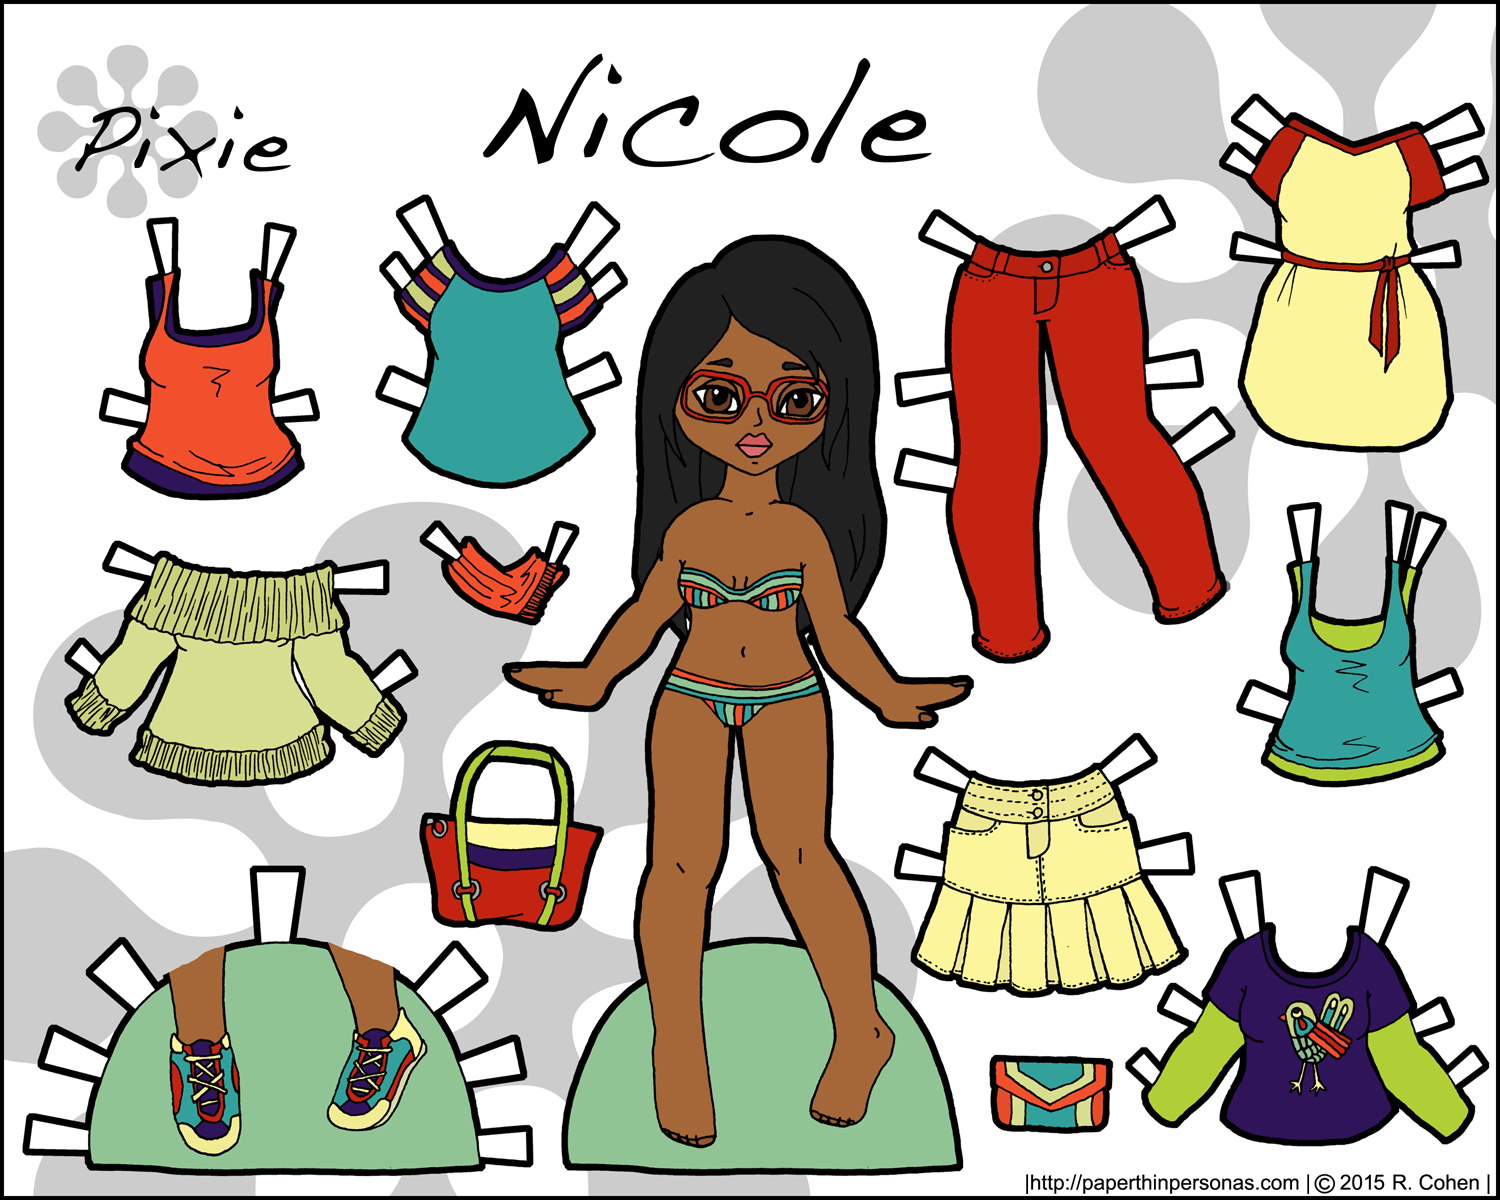 Nicole: A Printable Fashion Paper Doll